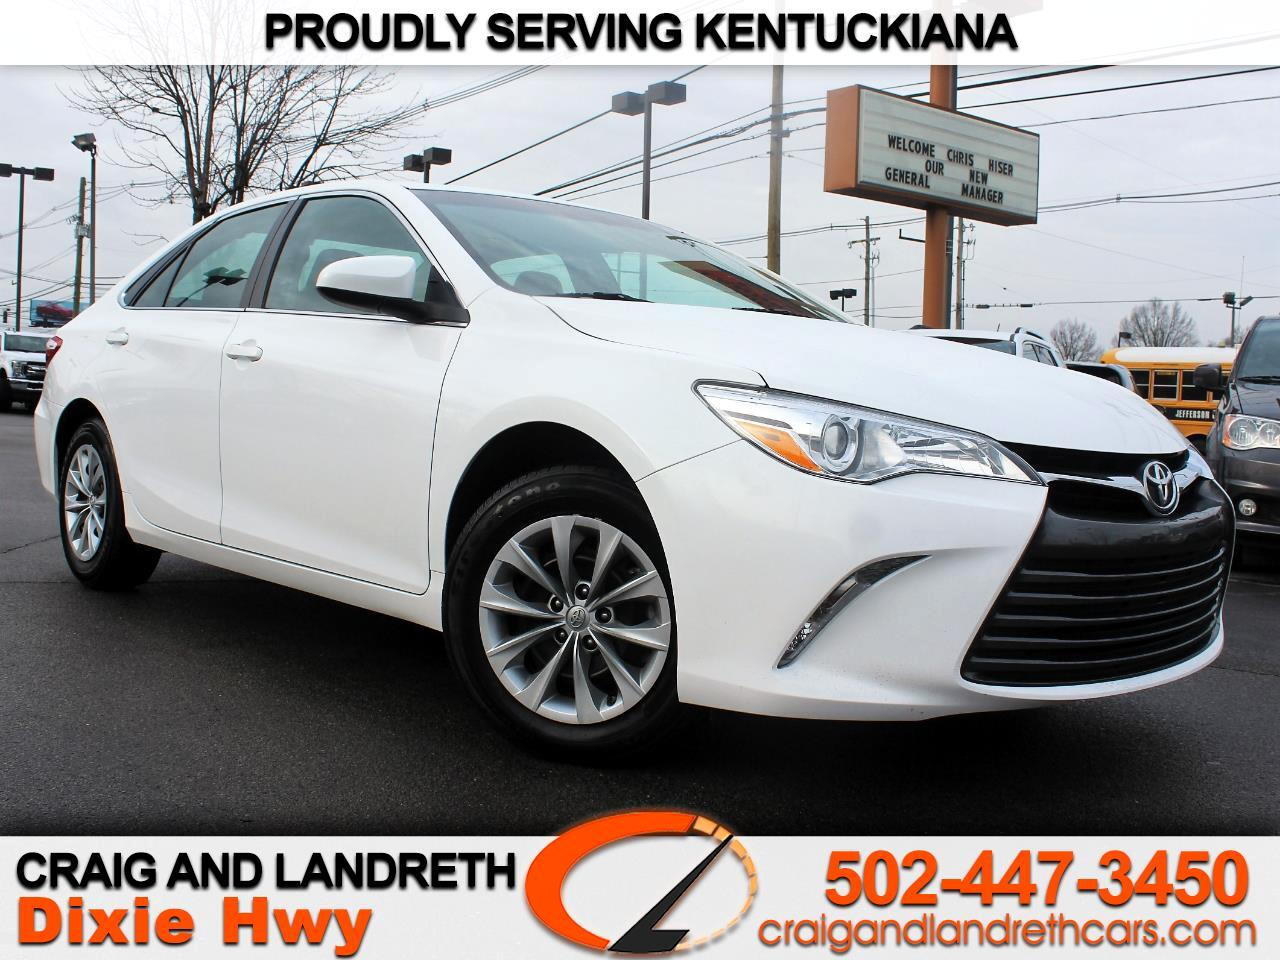 2016 Toyota Camry 2014.5 4dr Sdn I4 Auto L (Natl)